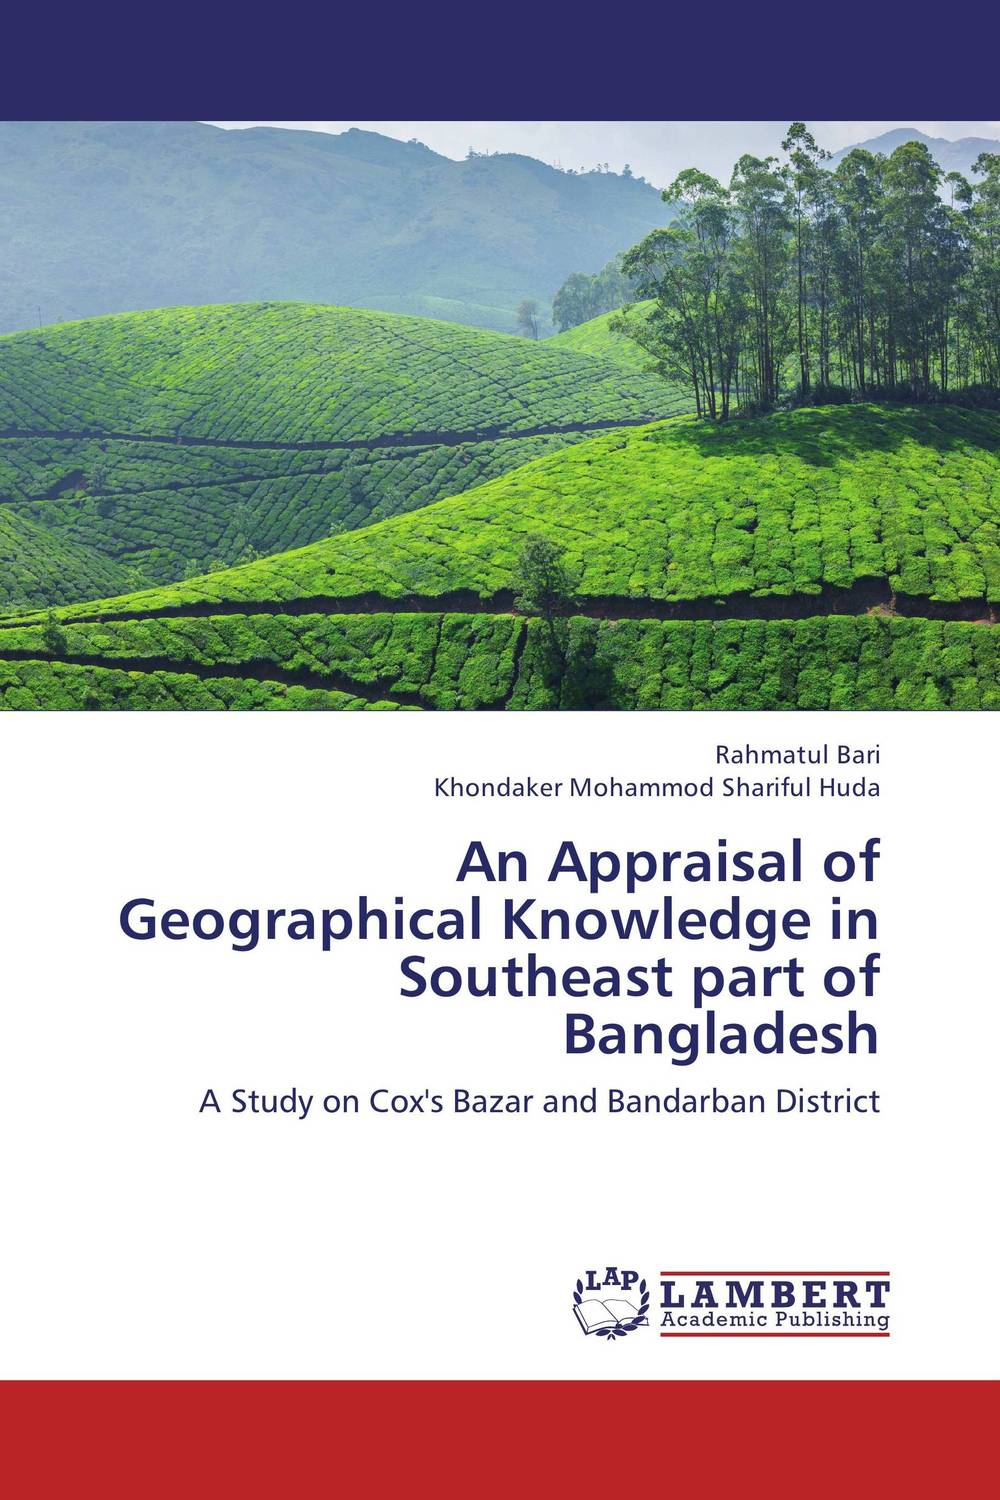 An Appraisal of Geographical Knowledge in Southeast part of Bangladesh breastfeeding knowledge in dhaka bangladesh